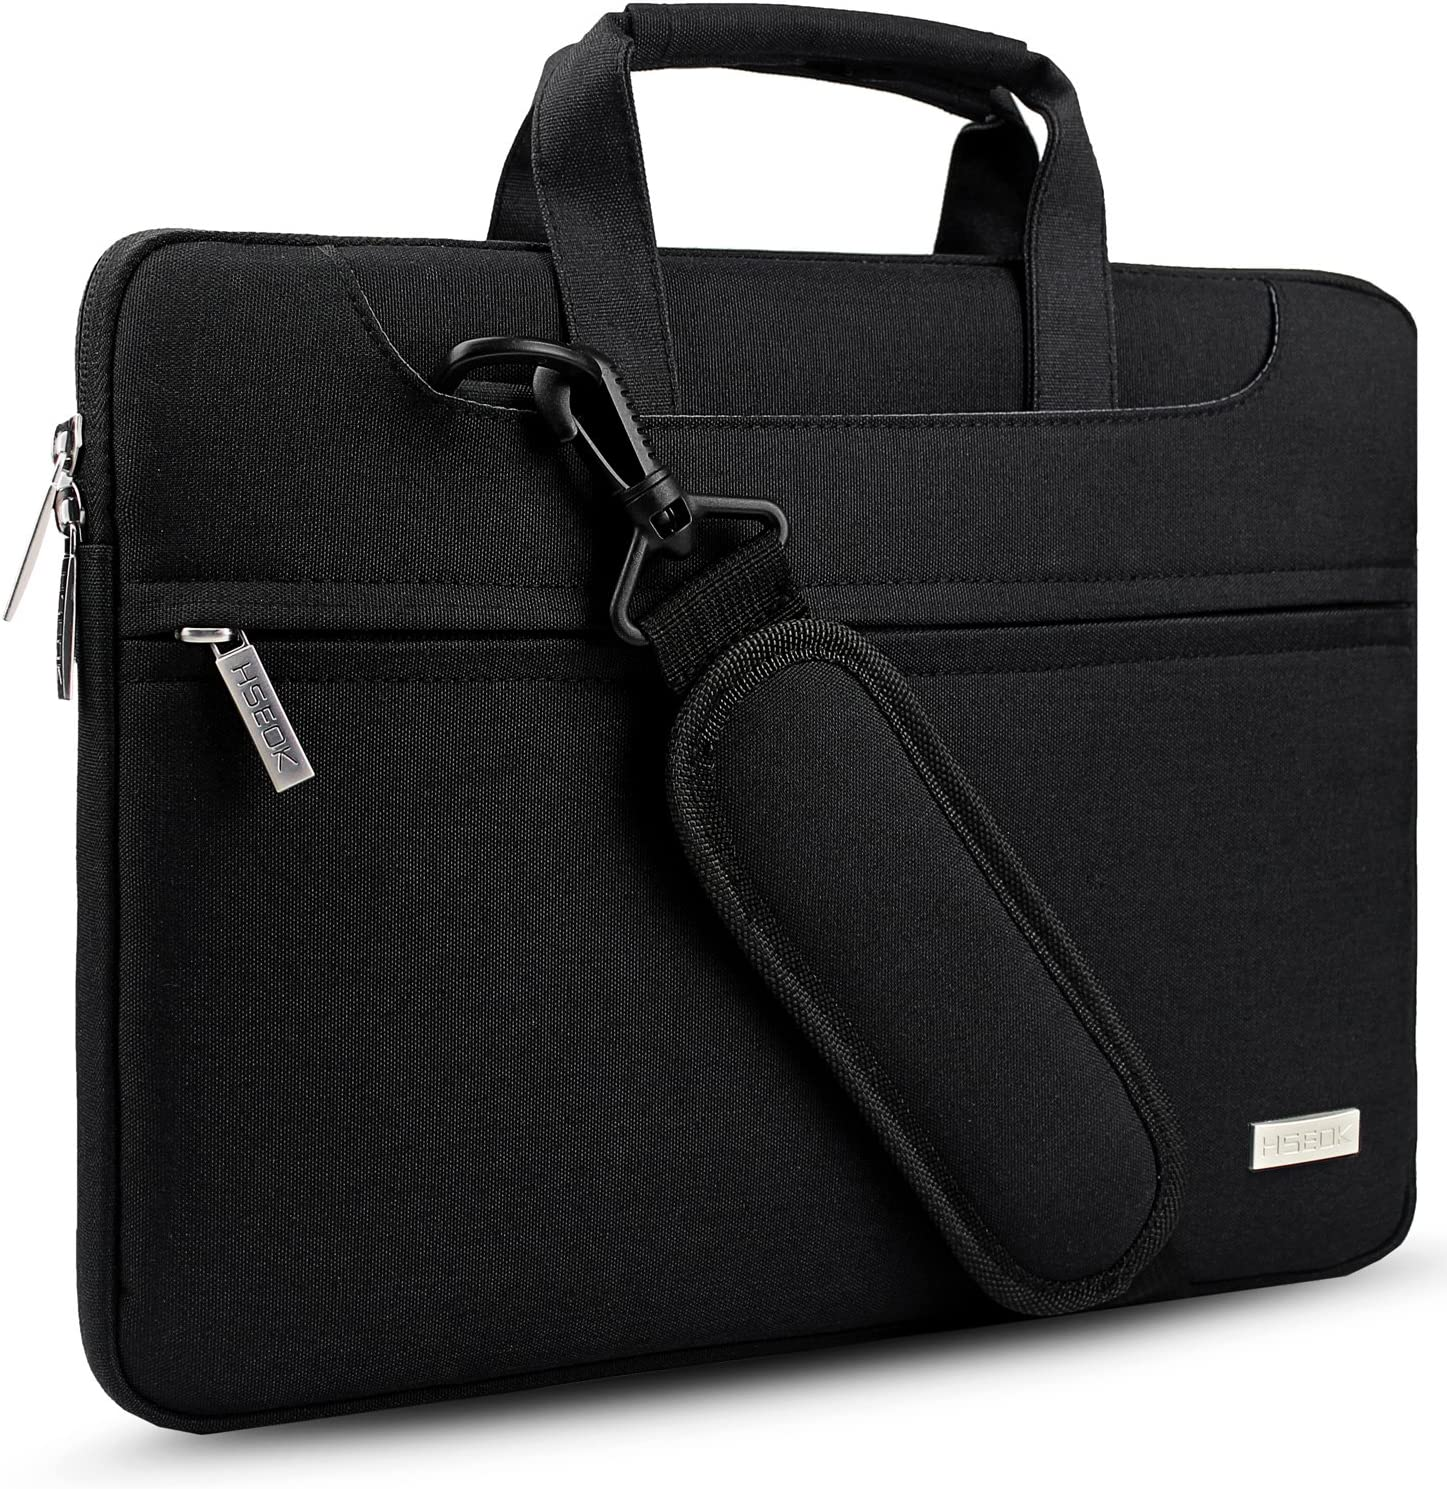 "Hseok Laptop Shoulder Bag 13 13.3 13.5 Inch Briefcase, Compatible 13.3 MacBook Air/Pro, XPS 13, Surface Book 13.5"" Spill-Resistant Handbag with Shoulder Strap for Most 13""-13.5"" Notebook, Black"